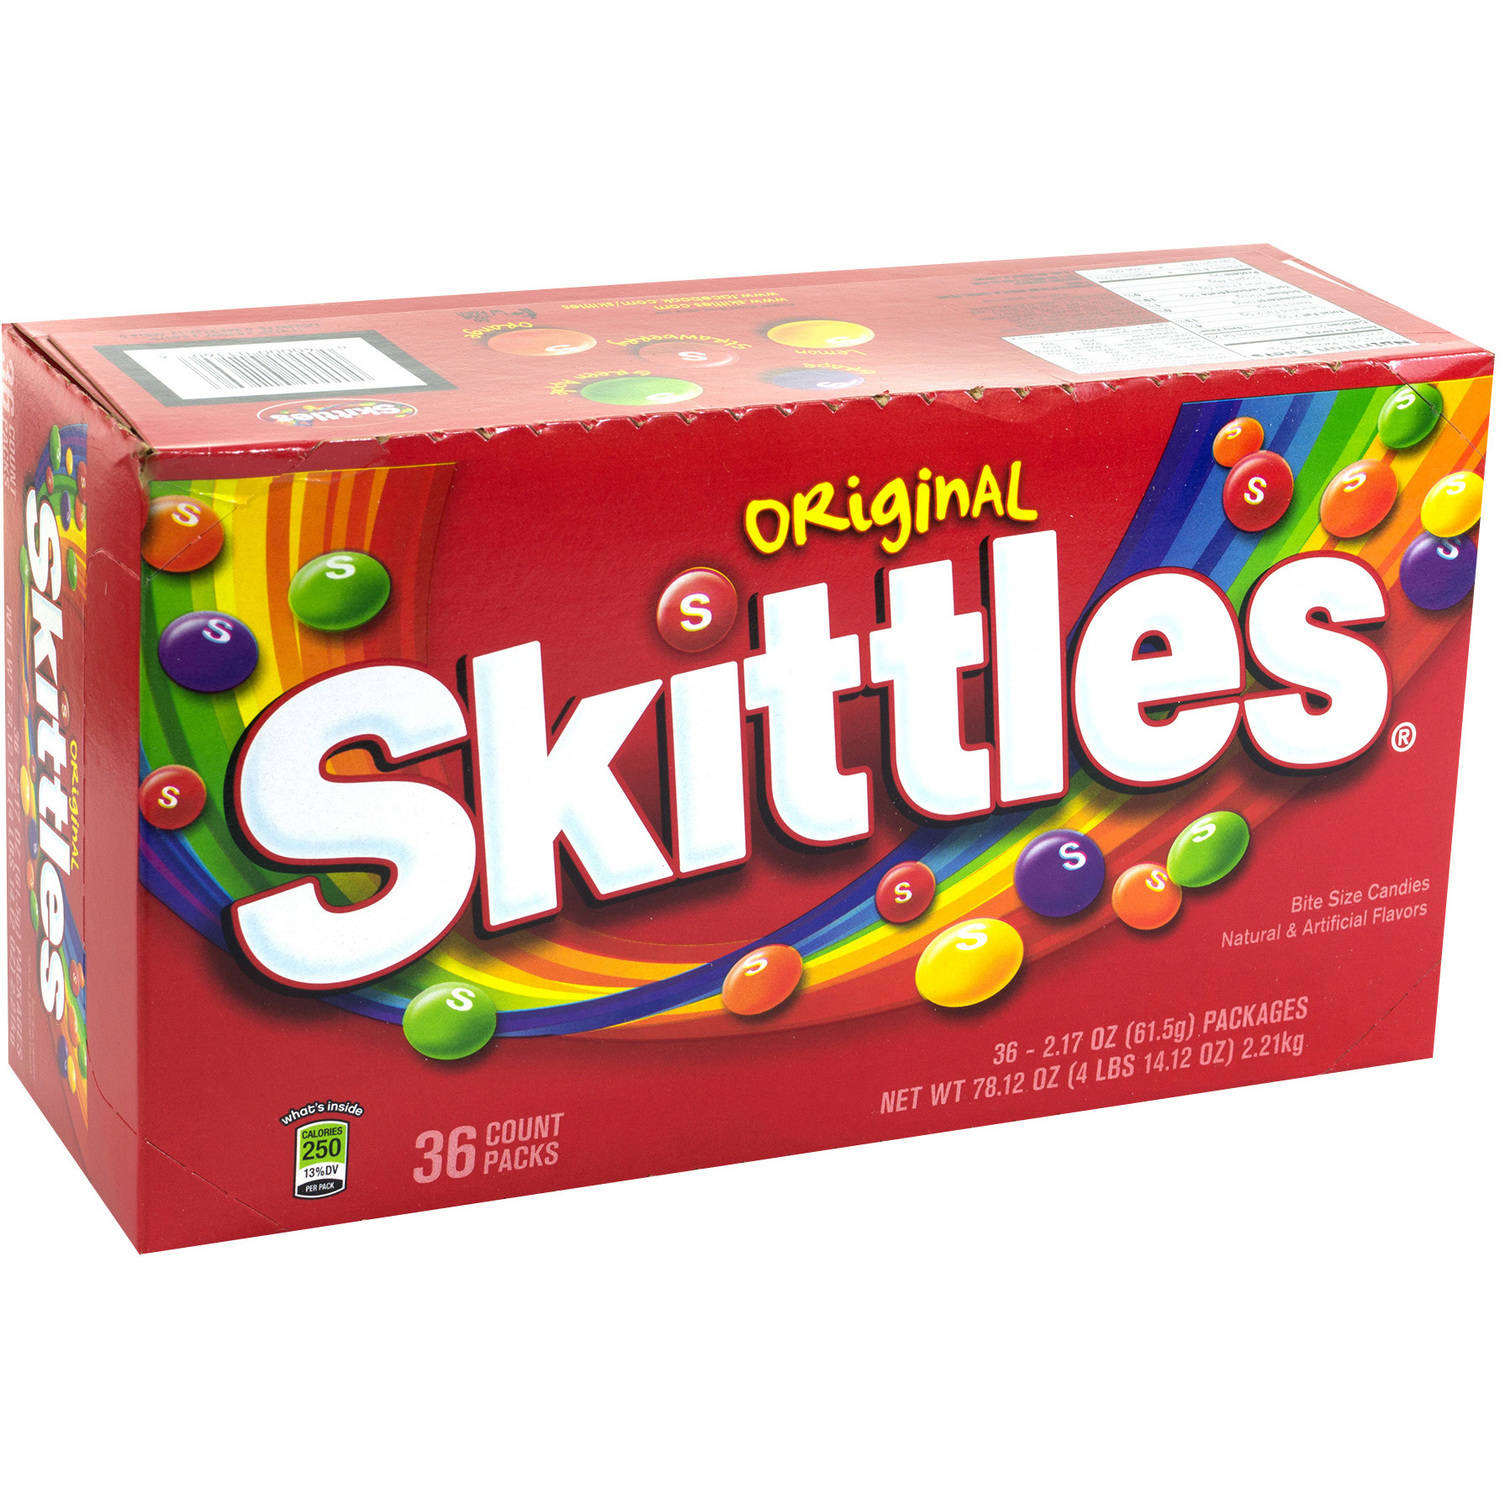 Original Skittles Bite Size Candy Bags, 2.17 oz, 36 count